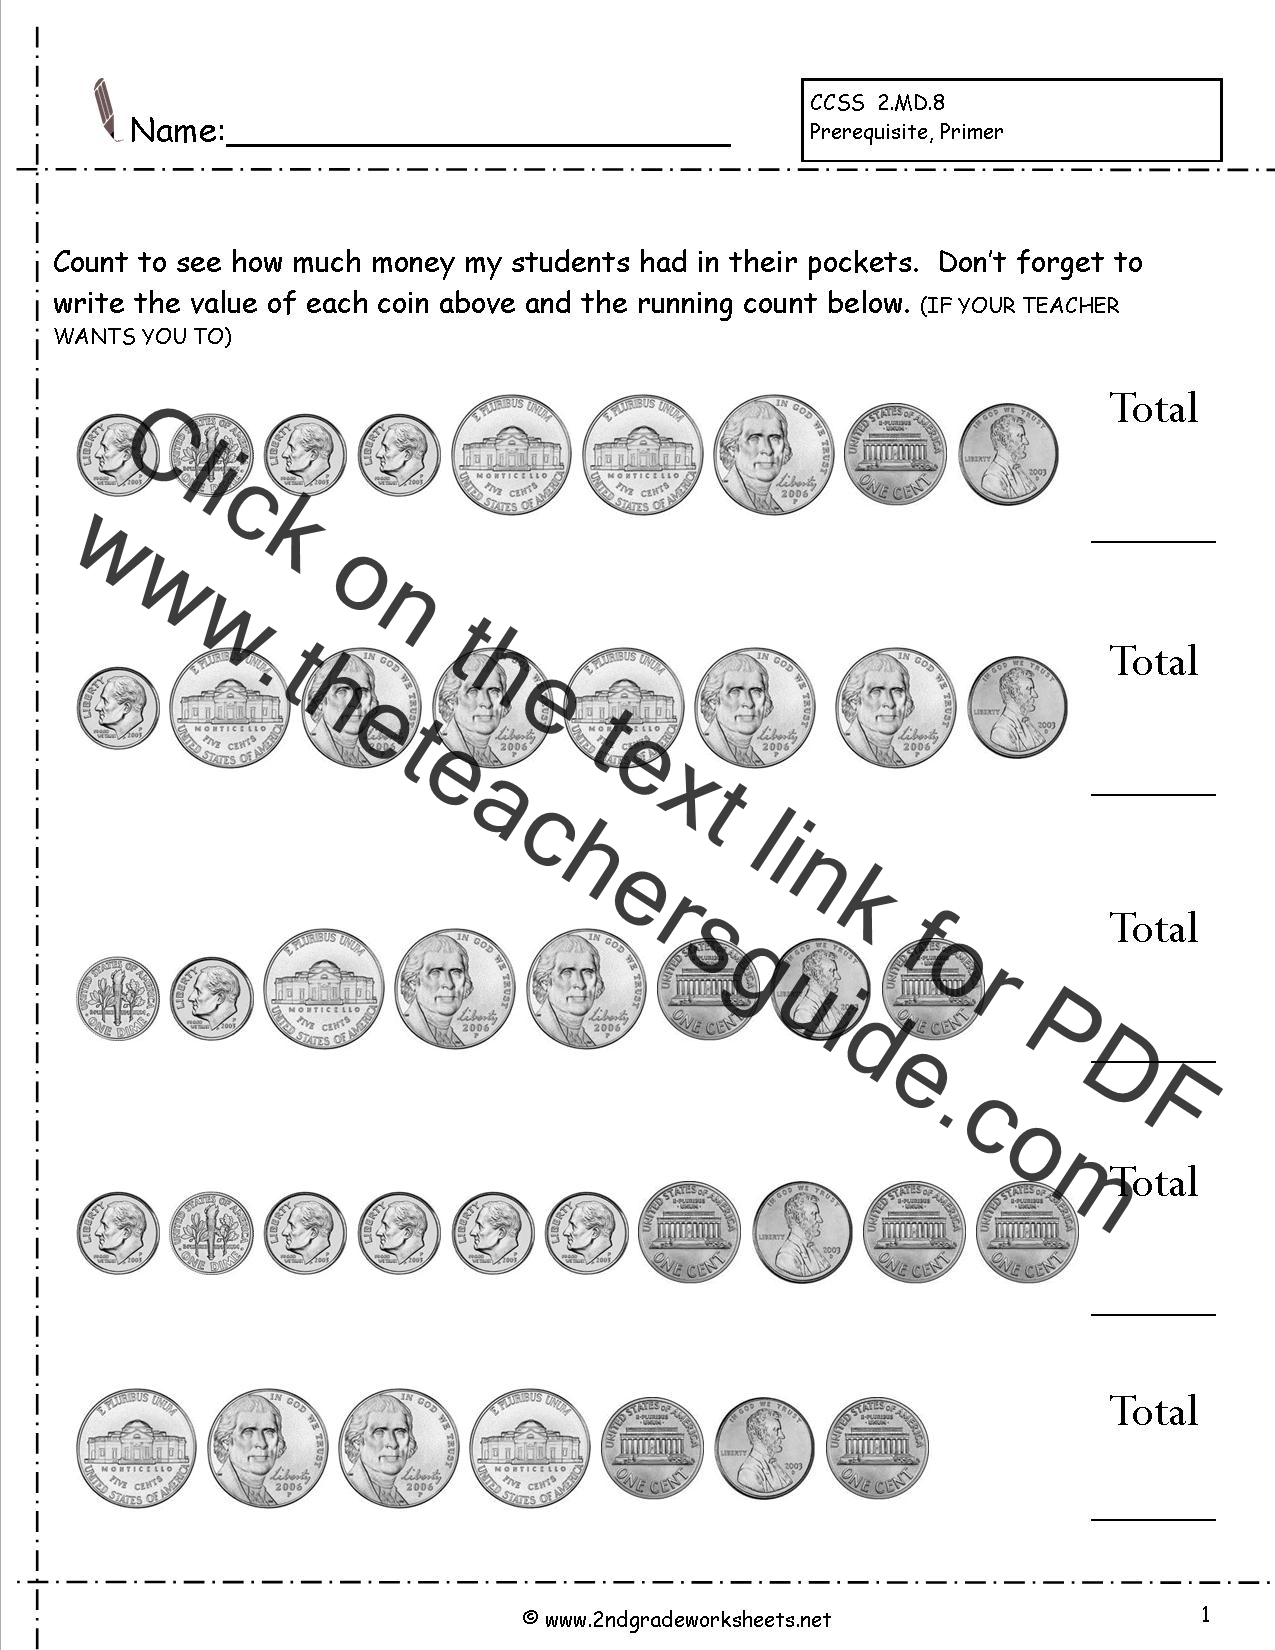 Worksheets Free Money Counting Worksheets counting coins and money worksheets printouts without quarters